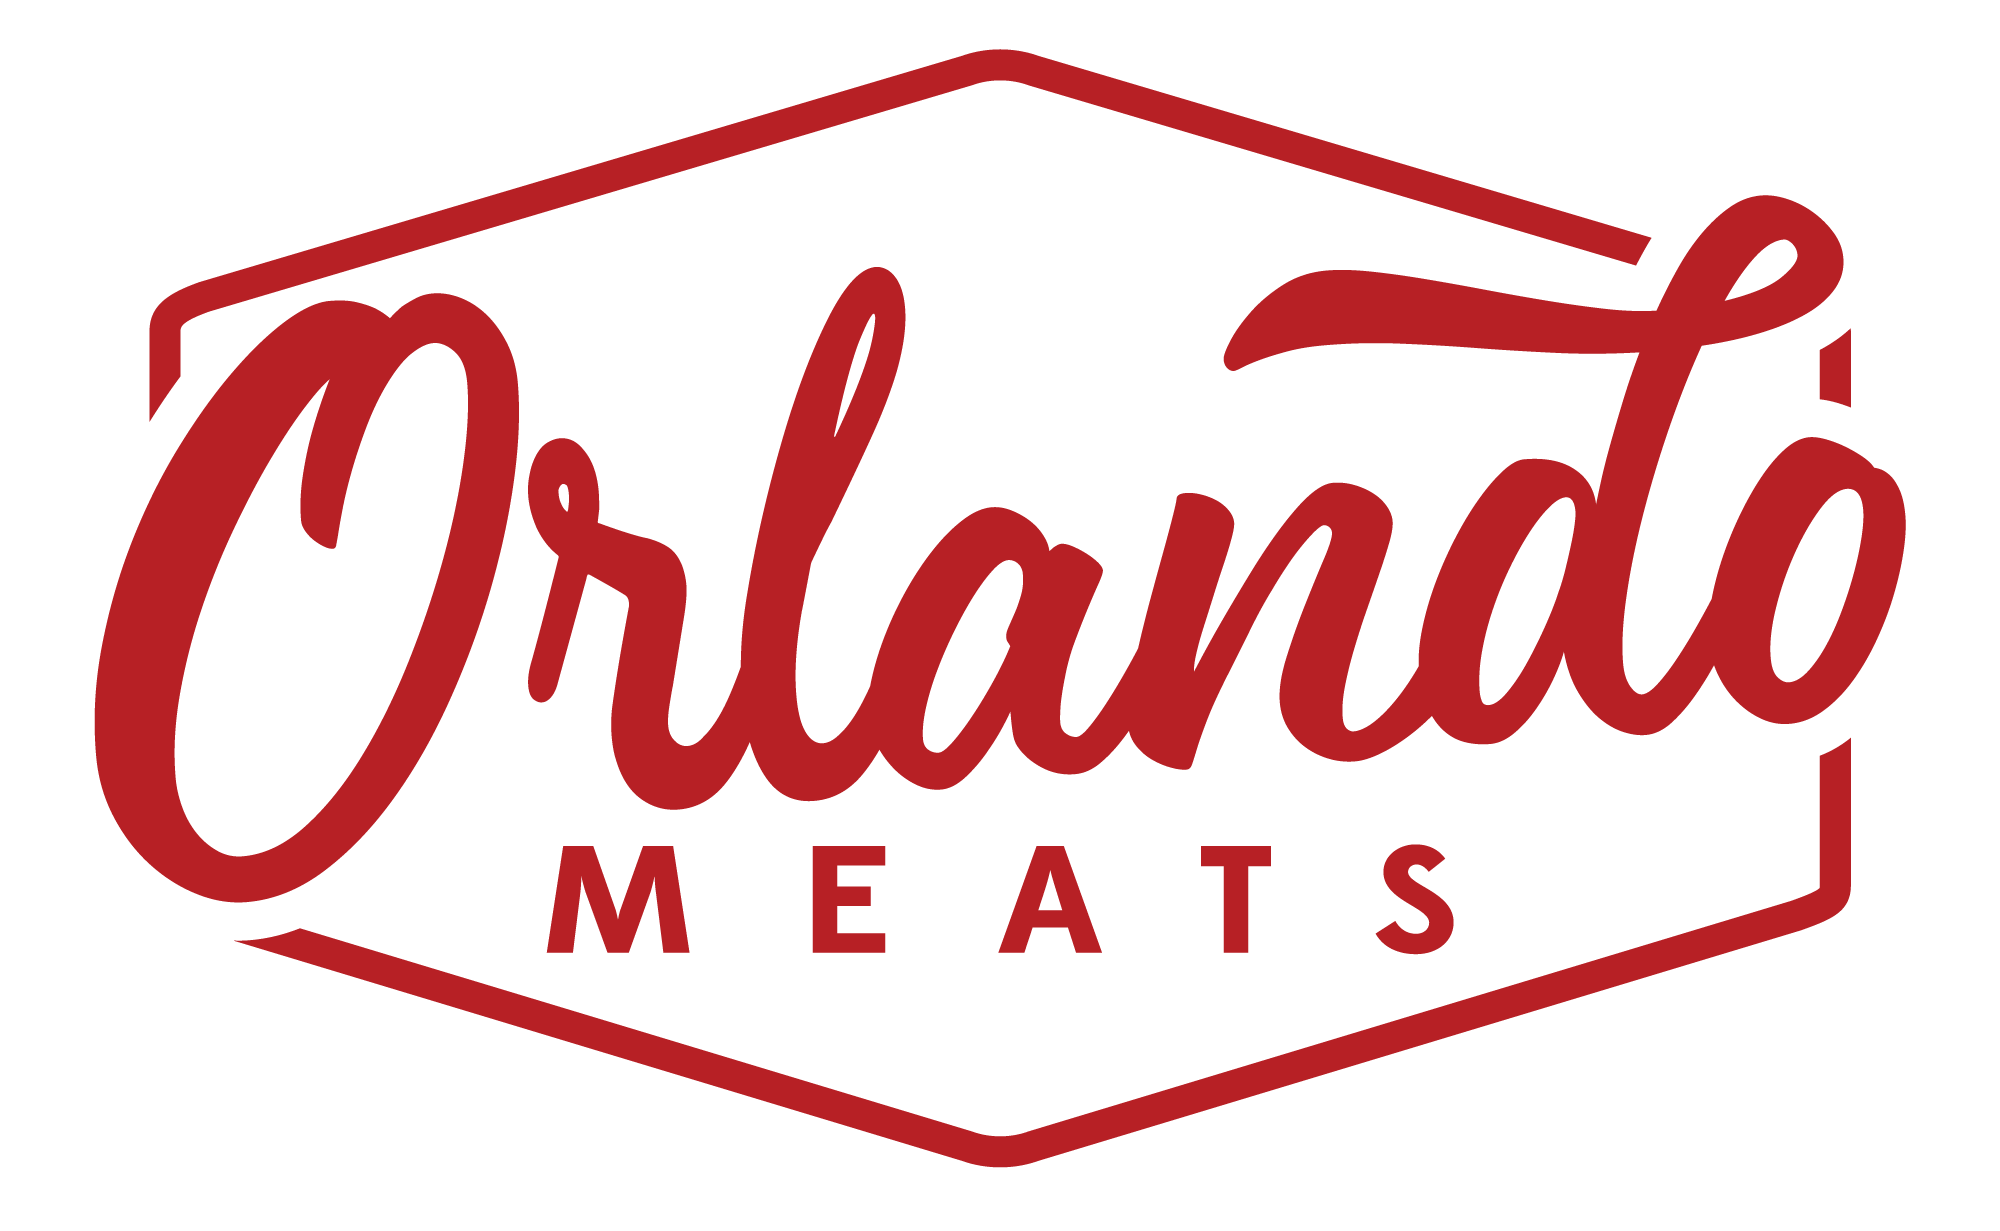 Orlando Meats // Restaurant & Butcher ⋆ Breakfast ⋆ Lunch